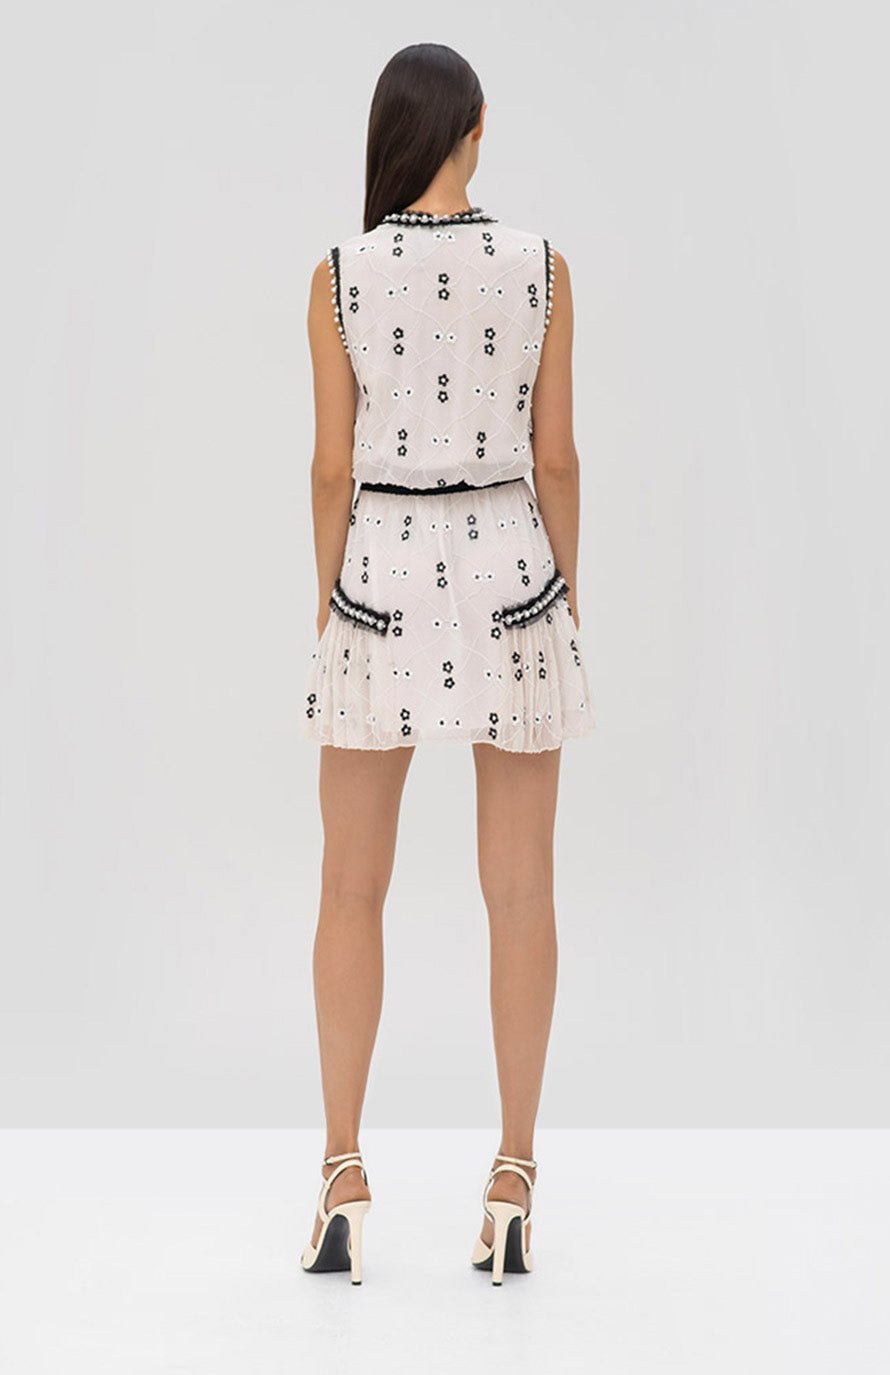 Alexis Isma Dress in Ivory Beaded Floral - Rear View